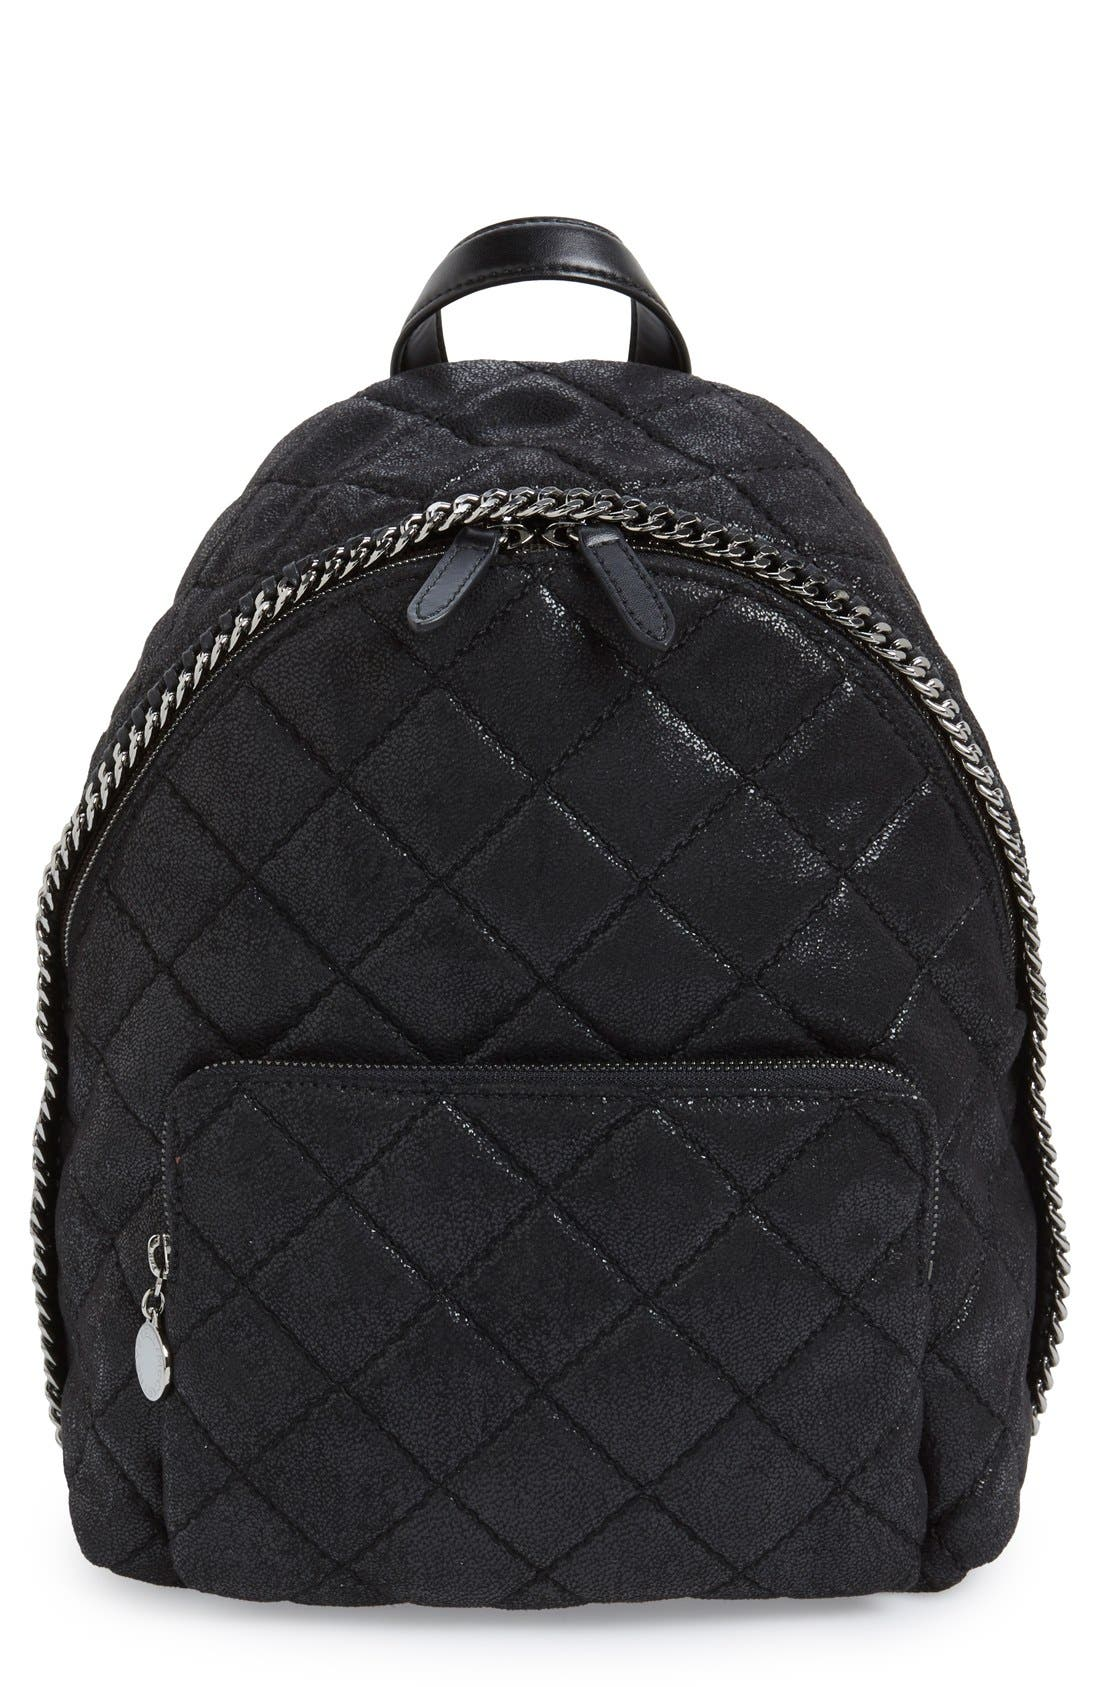 Alternate Image 1 Selected - Stella McCartney 'Mini Falabella' Faux Leather Quilted Backpack